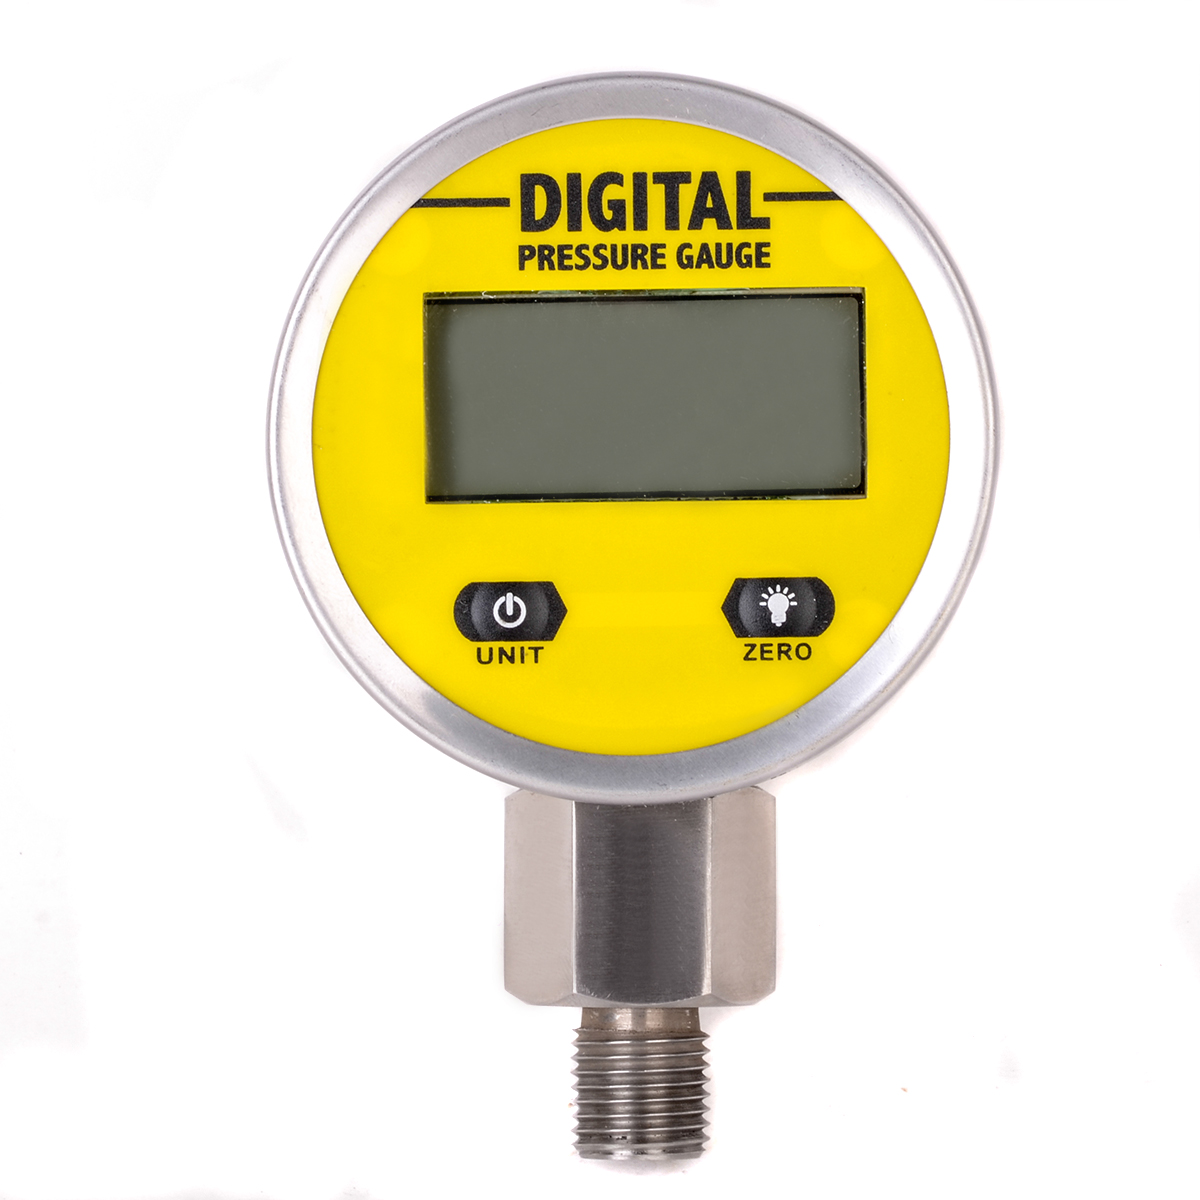 1pc New Reliable Digital Hydraulic Pressure Gauge 0-250BAR / 3600PSI NPT1/4 Base Entry With Backlight Switch LCD Display Mayitr<br>